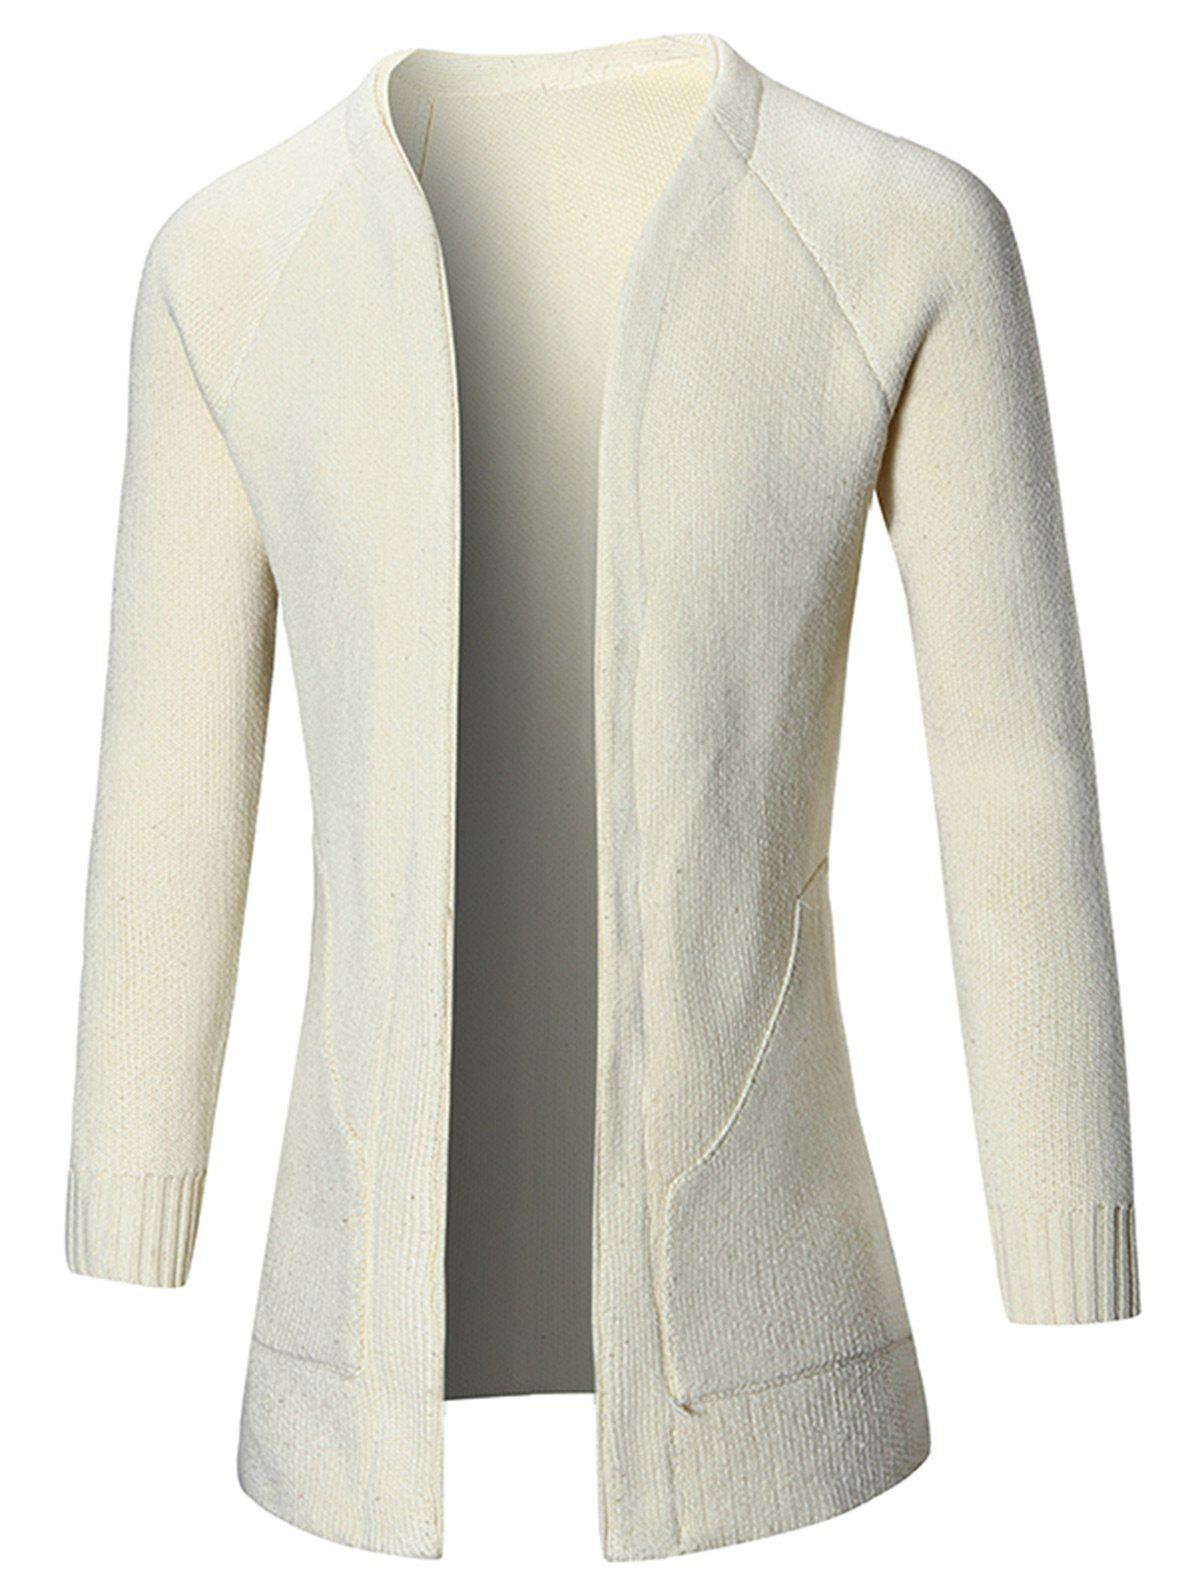 Plain Raglan Sleeve Open Front Cardigan - OFF WHITE M